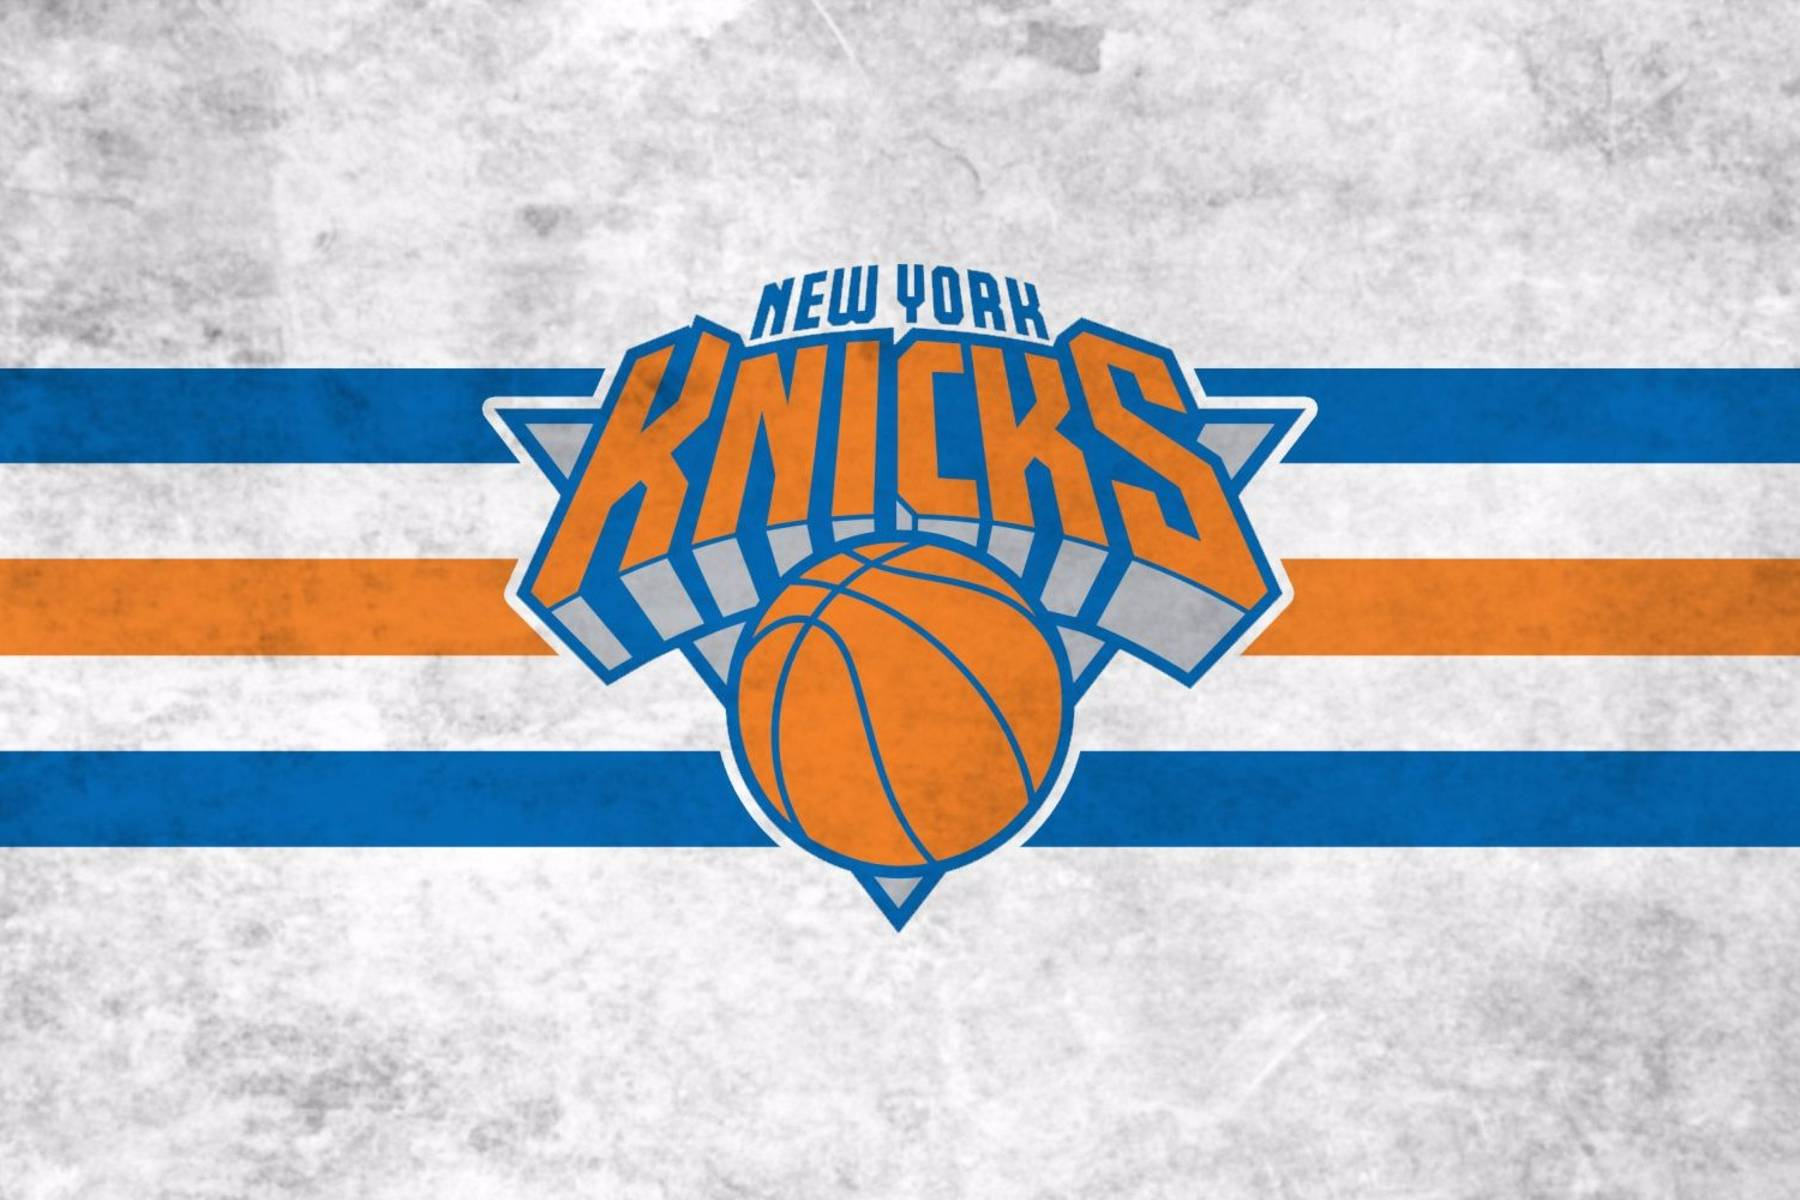 New York Knicks tickets 100 guaranteed by FanProtect Buy and sell New York Knicks tickets and other NBA basketball tickets at StubHub!